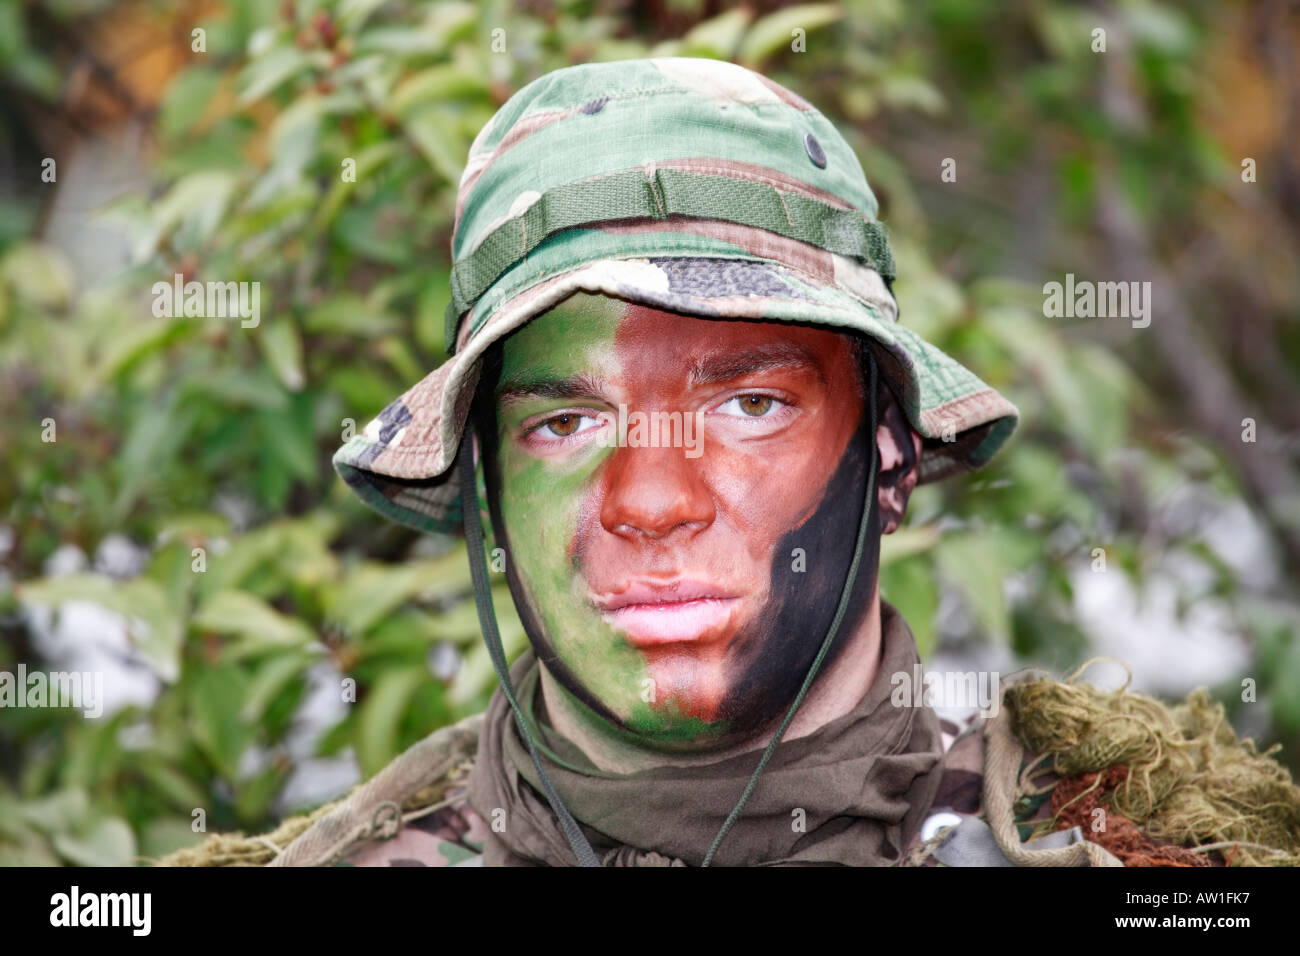 Portrait of a young soldier, recruit with facial camouflage - Stock Image